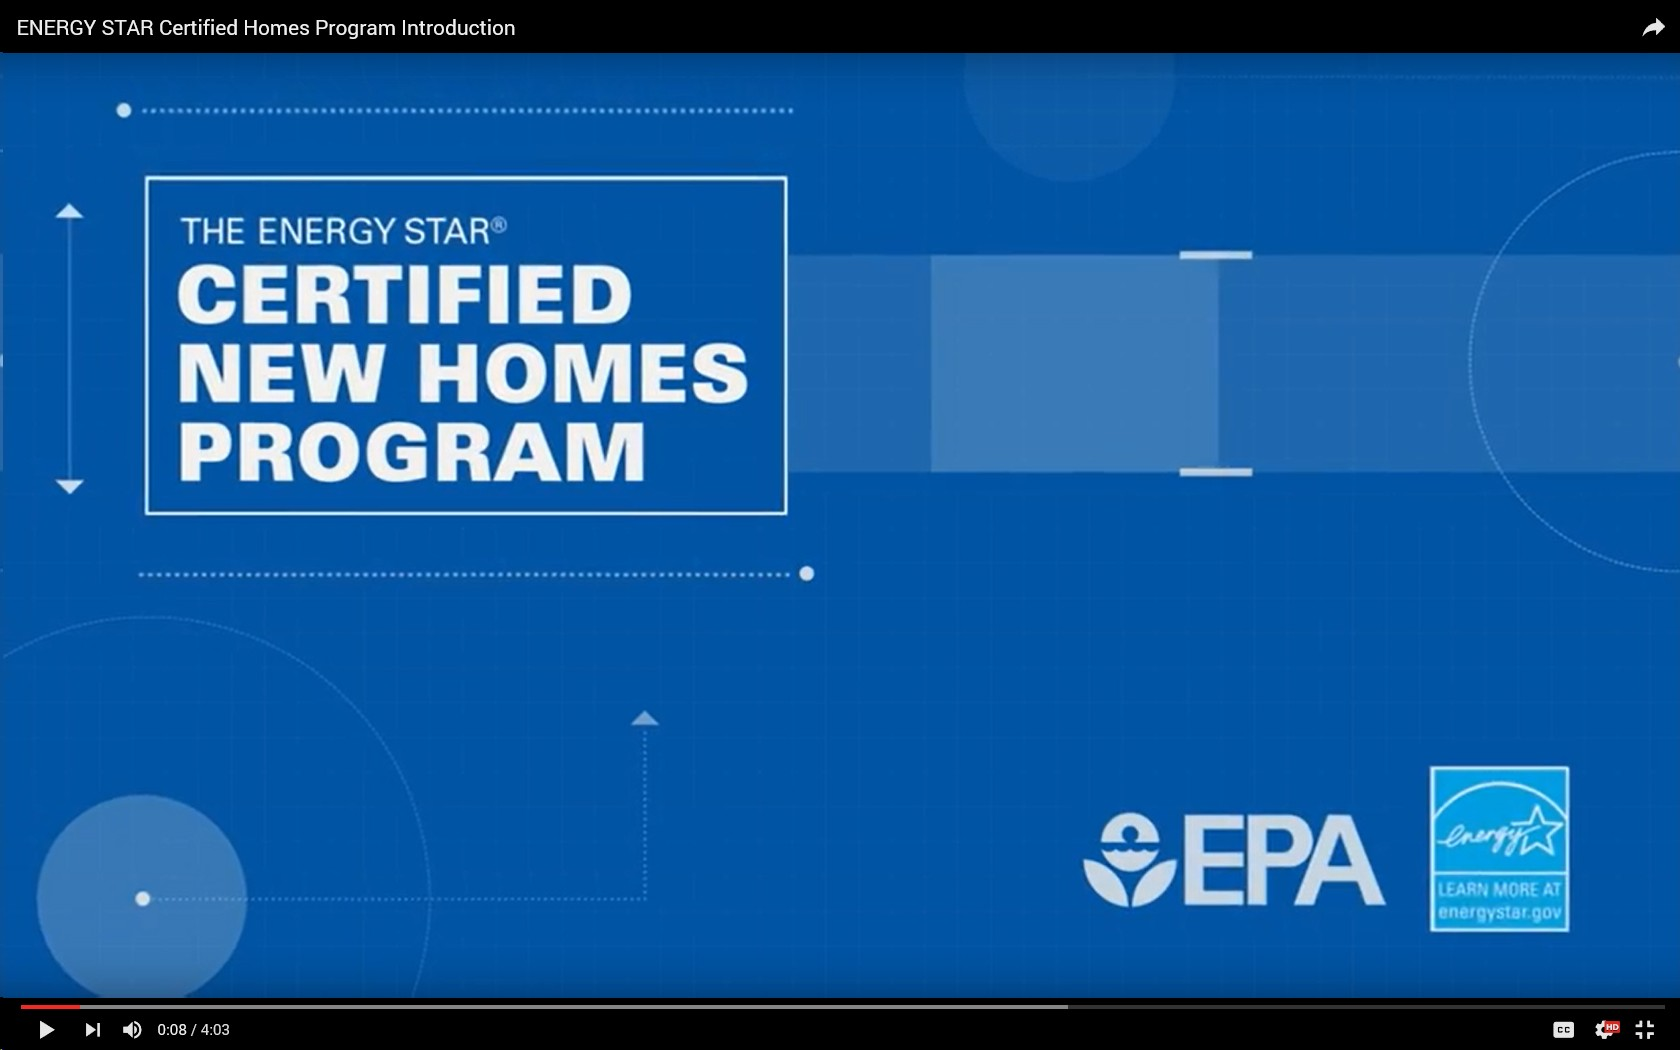 ENERGY STAR Home Builder Recruitment Video